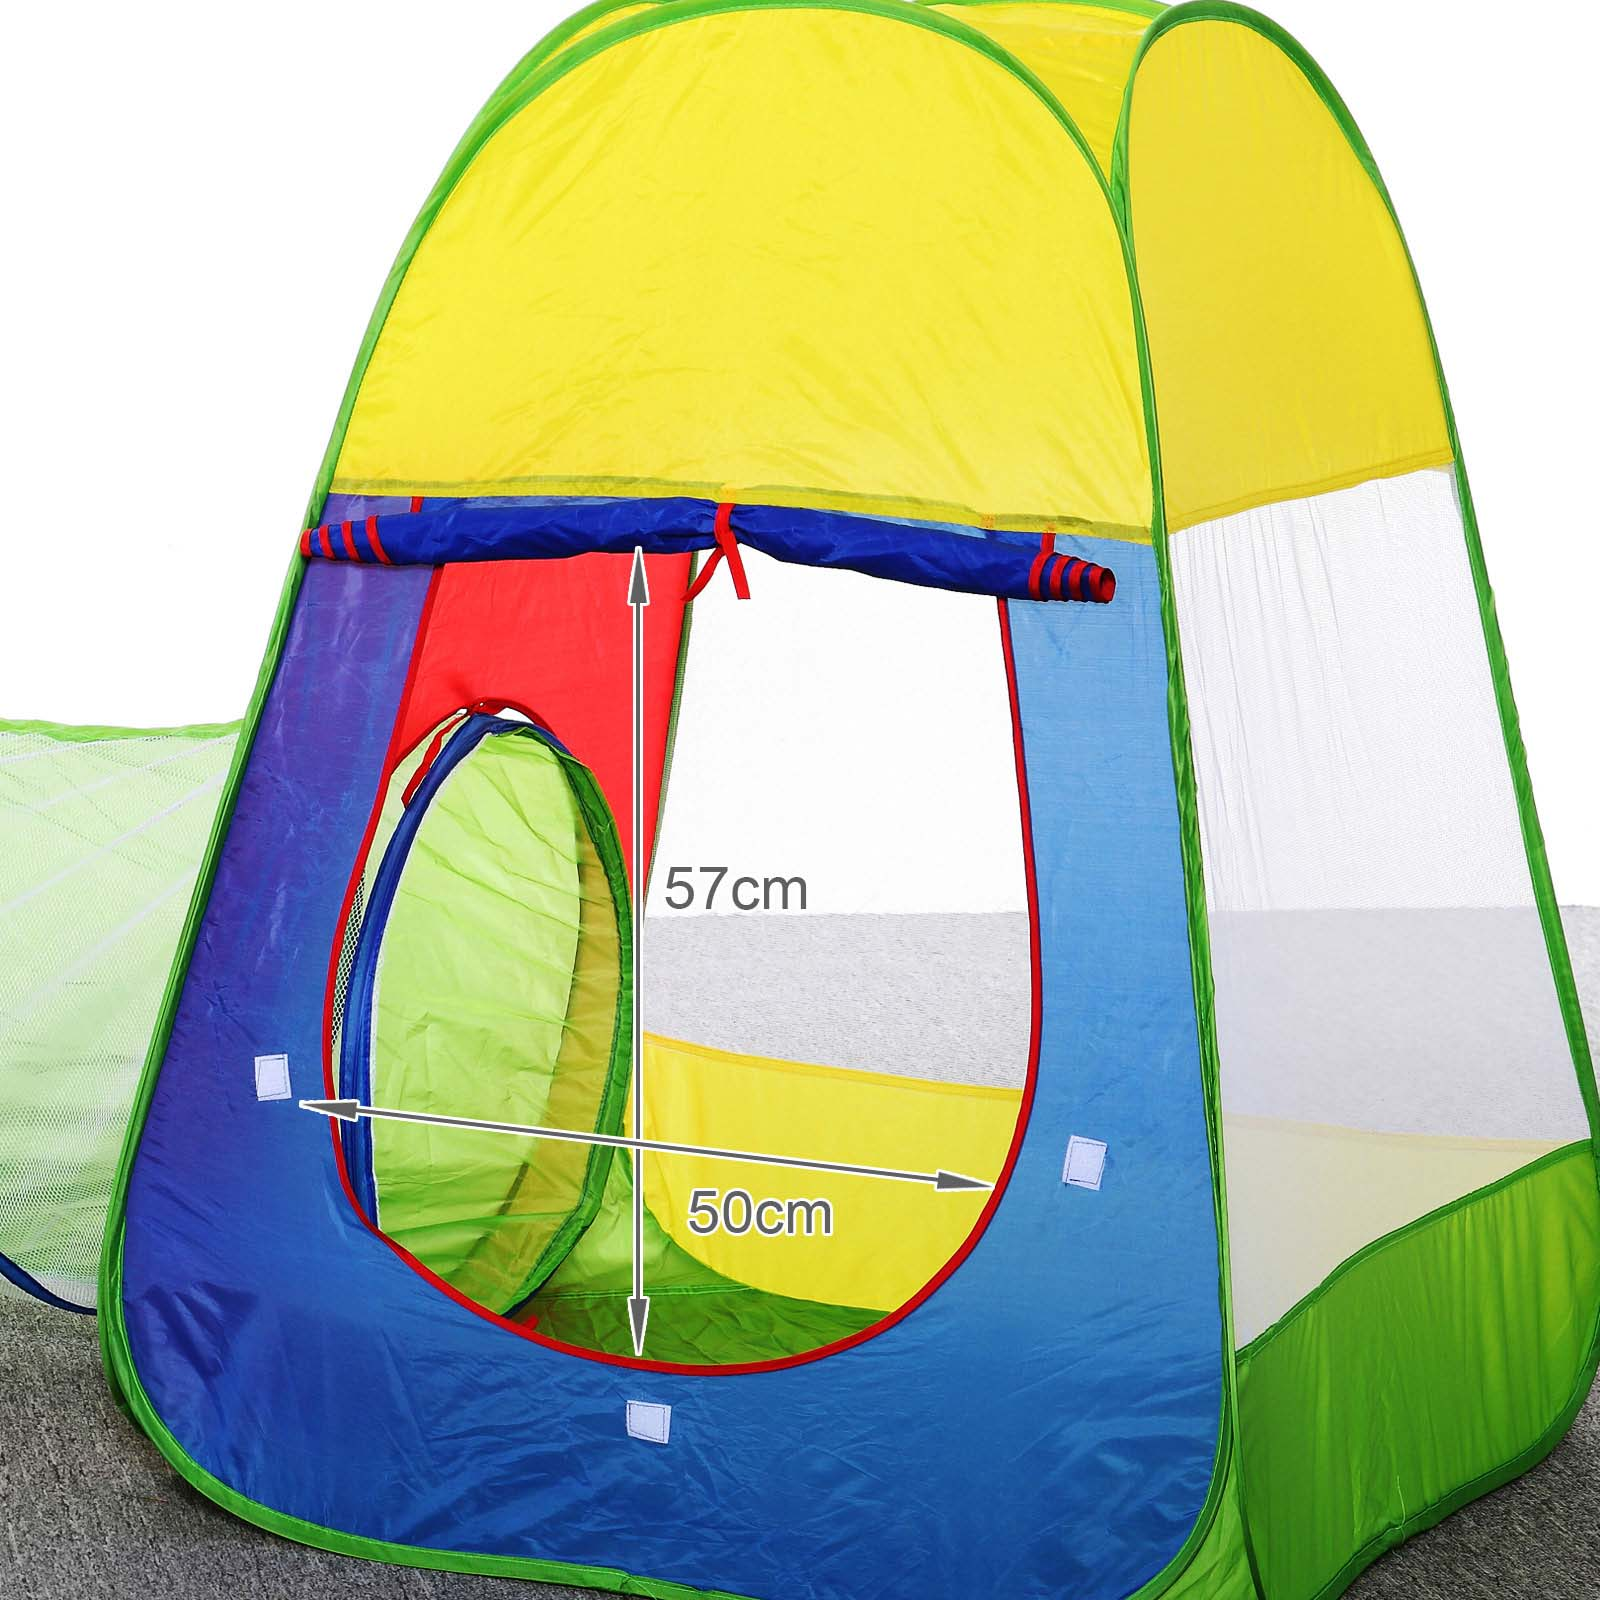 kids toddlers tunnel pop up play tent cubby playhouse indoor outdoor toy set new ebay. Black Bedroom Furniture Sets. Home Design Ideas